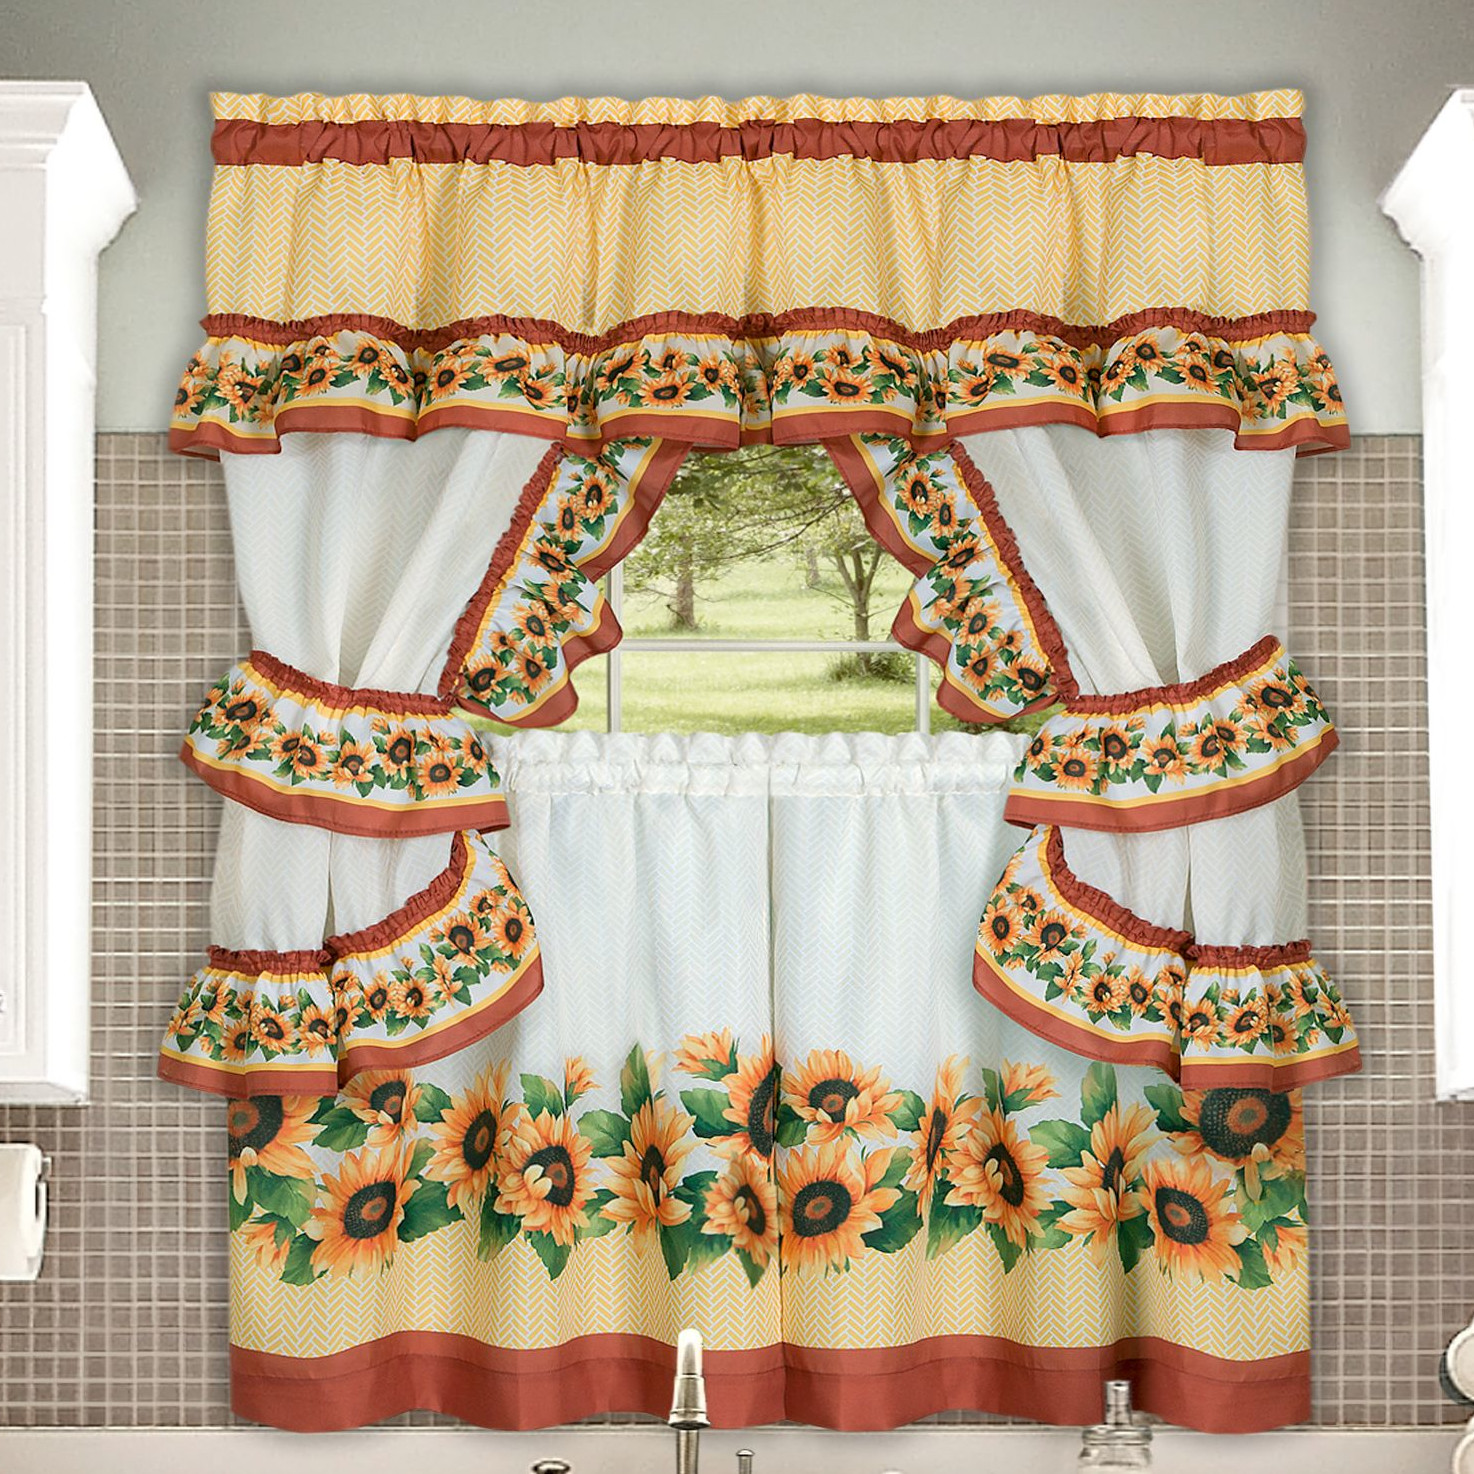 Chevron Sunflower Complete Kitchen Curtain Tier, Swag, Tiebacks & Valance Set - 36 in. Long